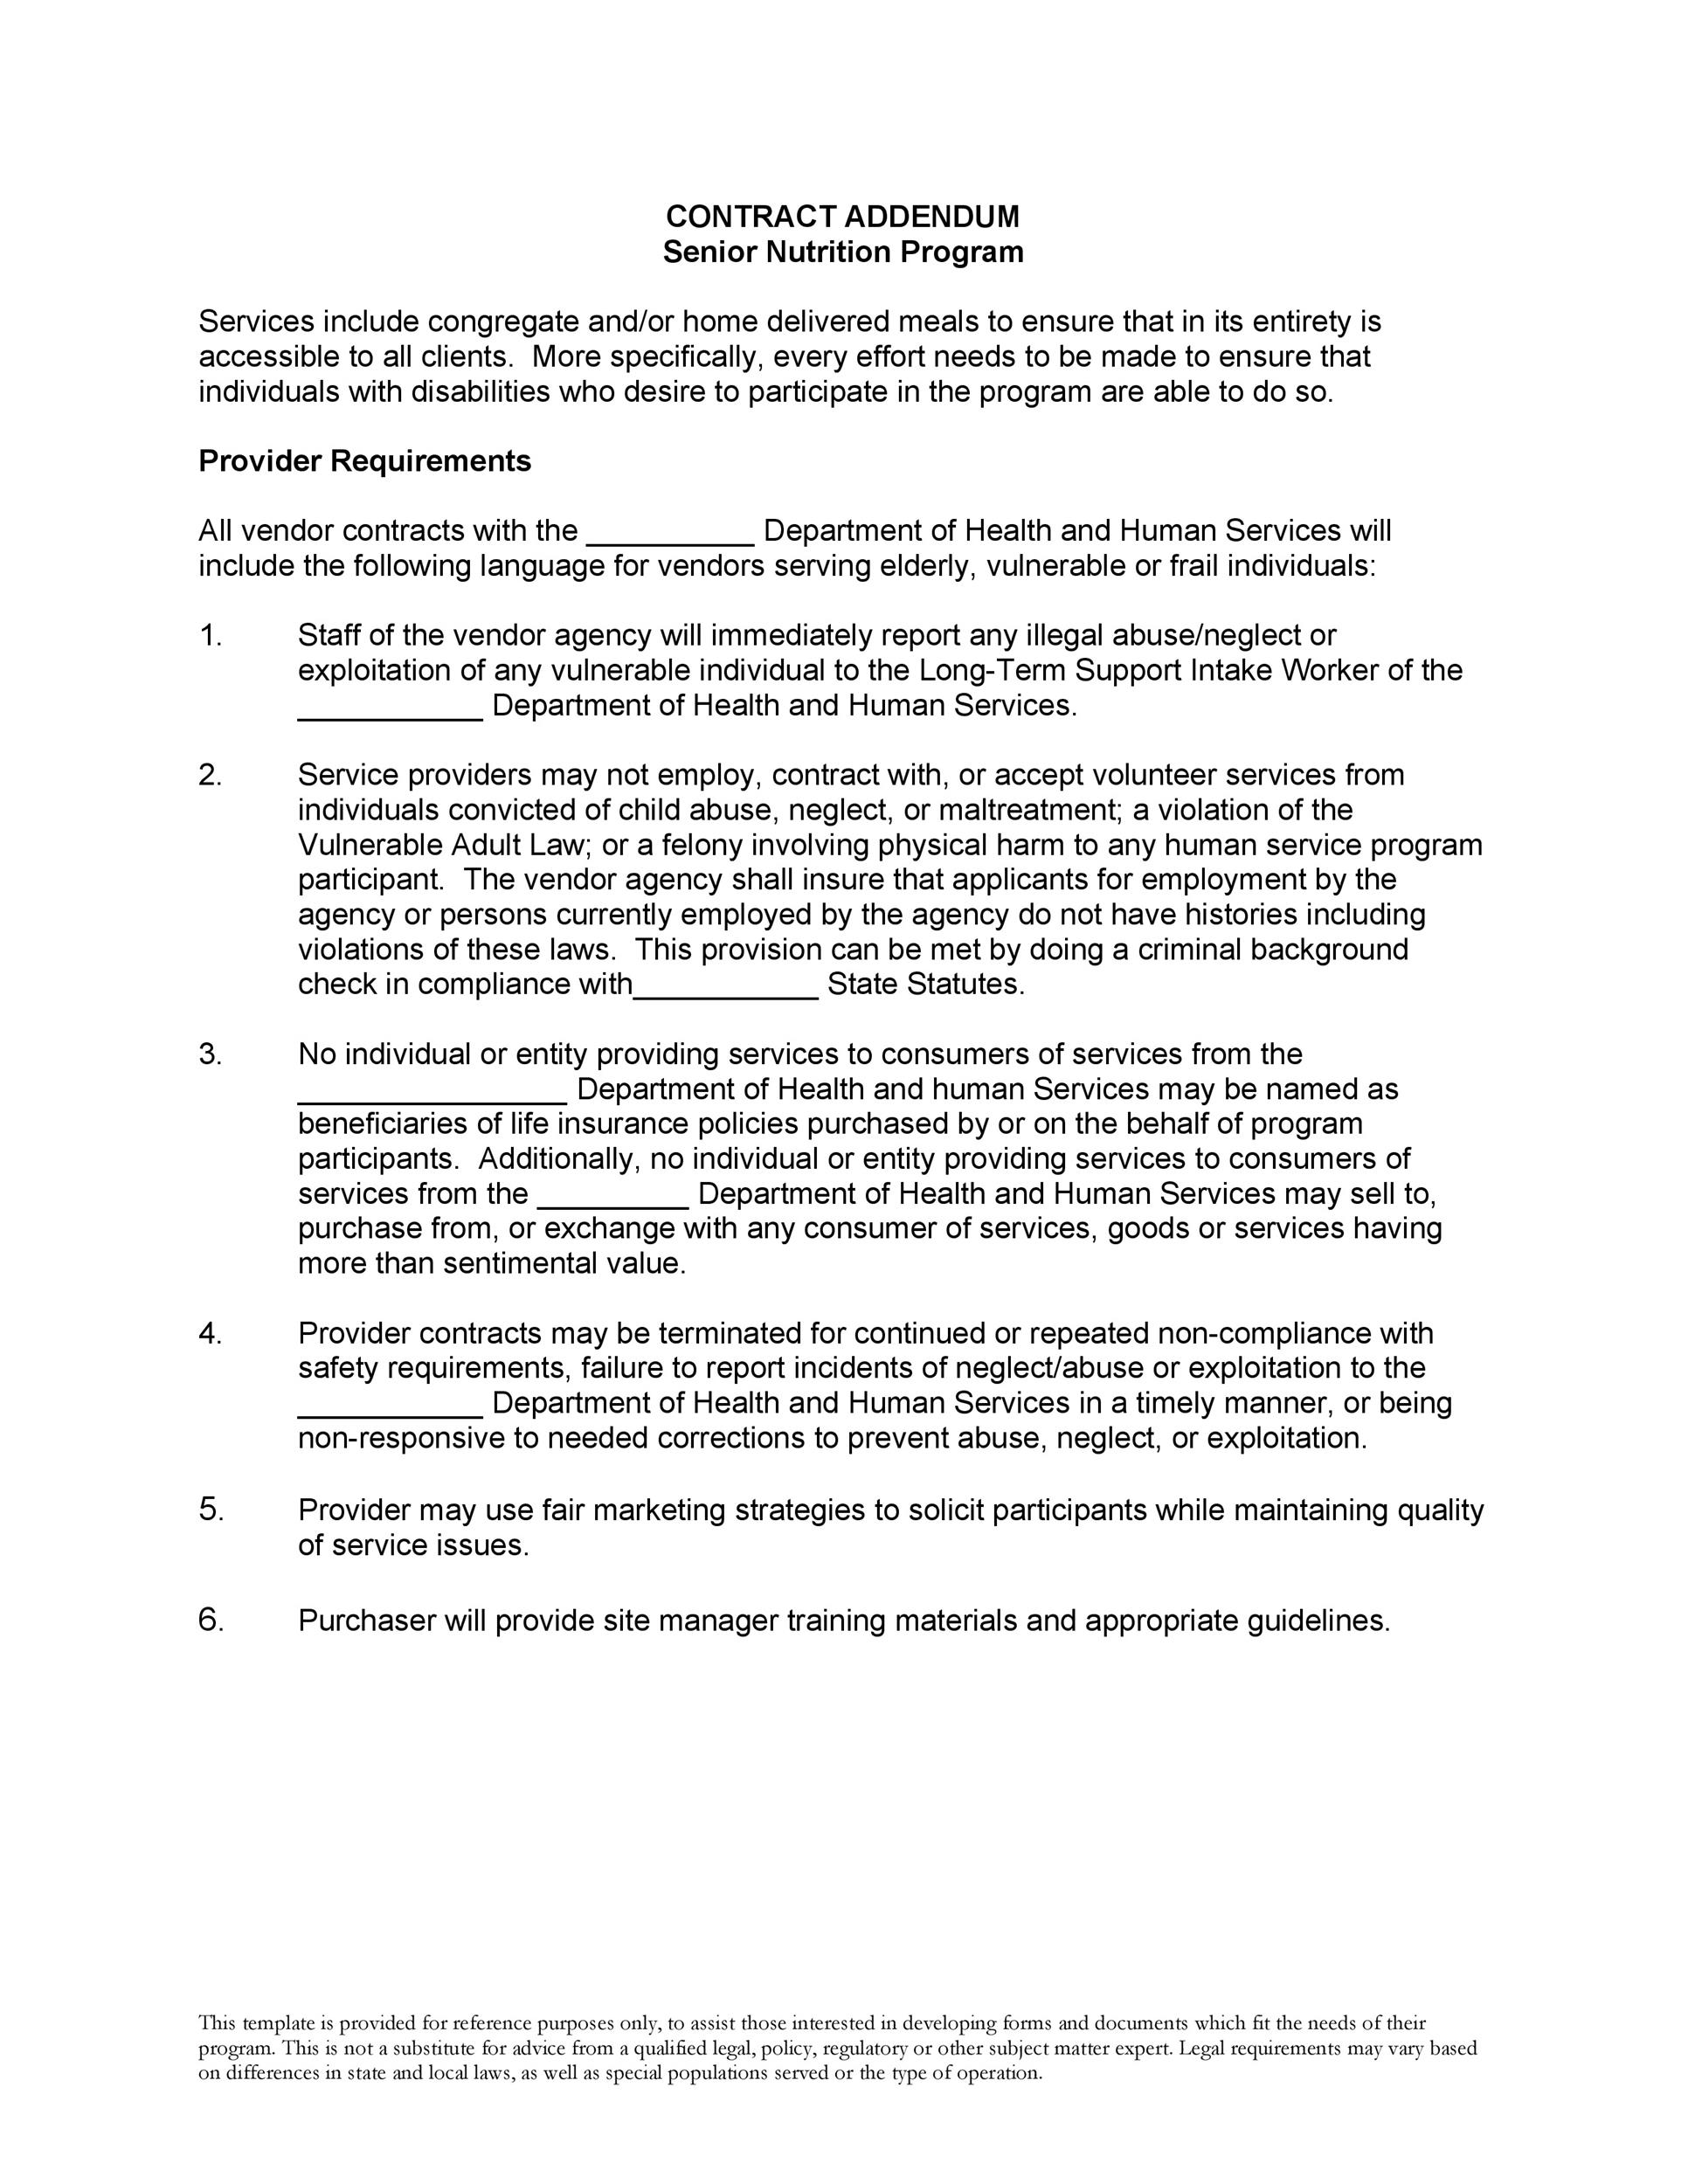 Free contract amendment 35